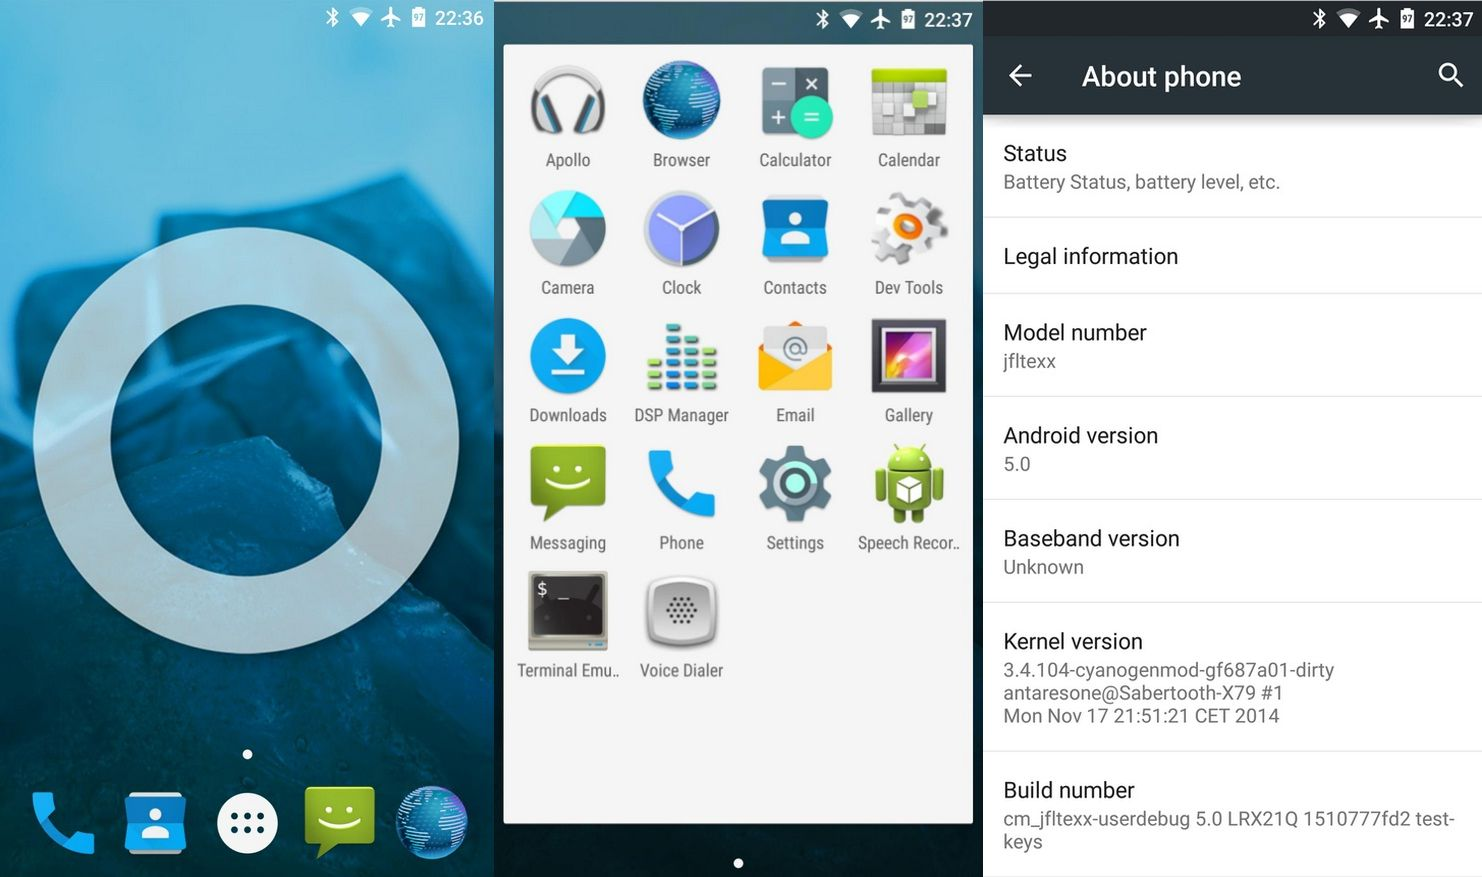 Update Galaxy S4 I9505 (Snapdragon 600) to Android 5 0 2 with